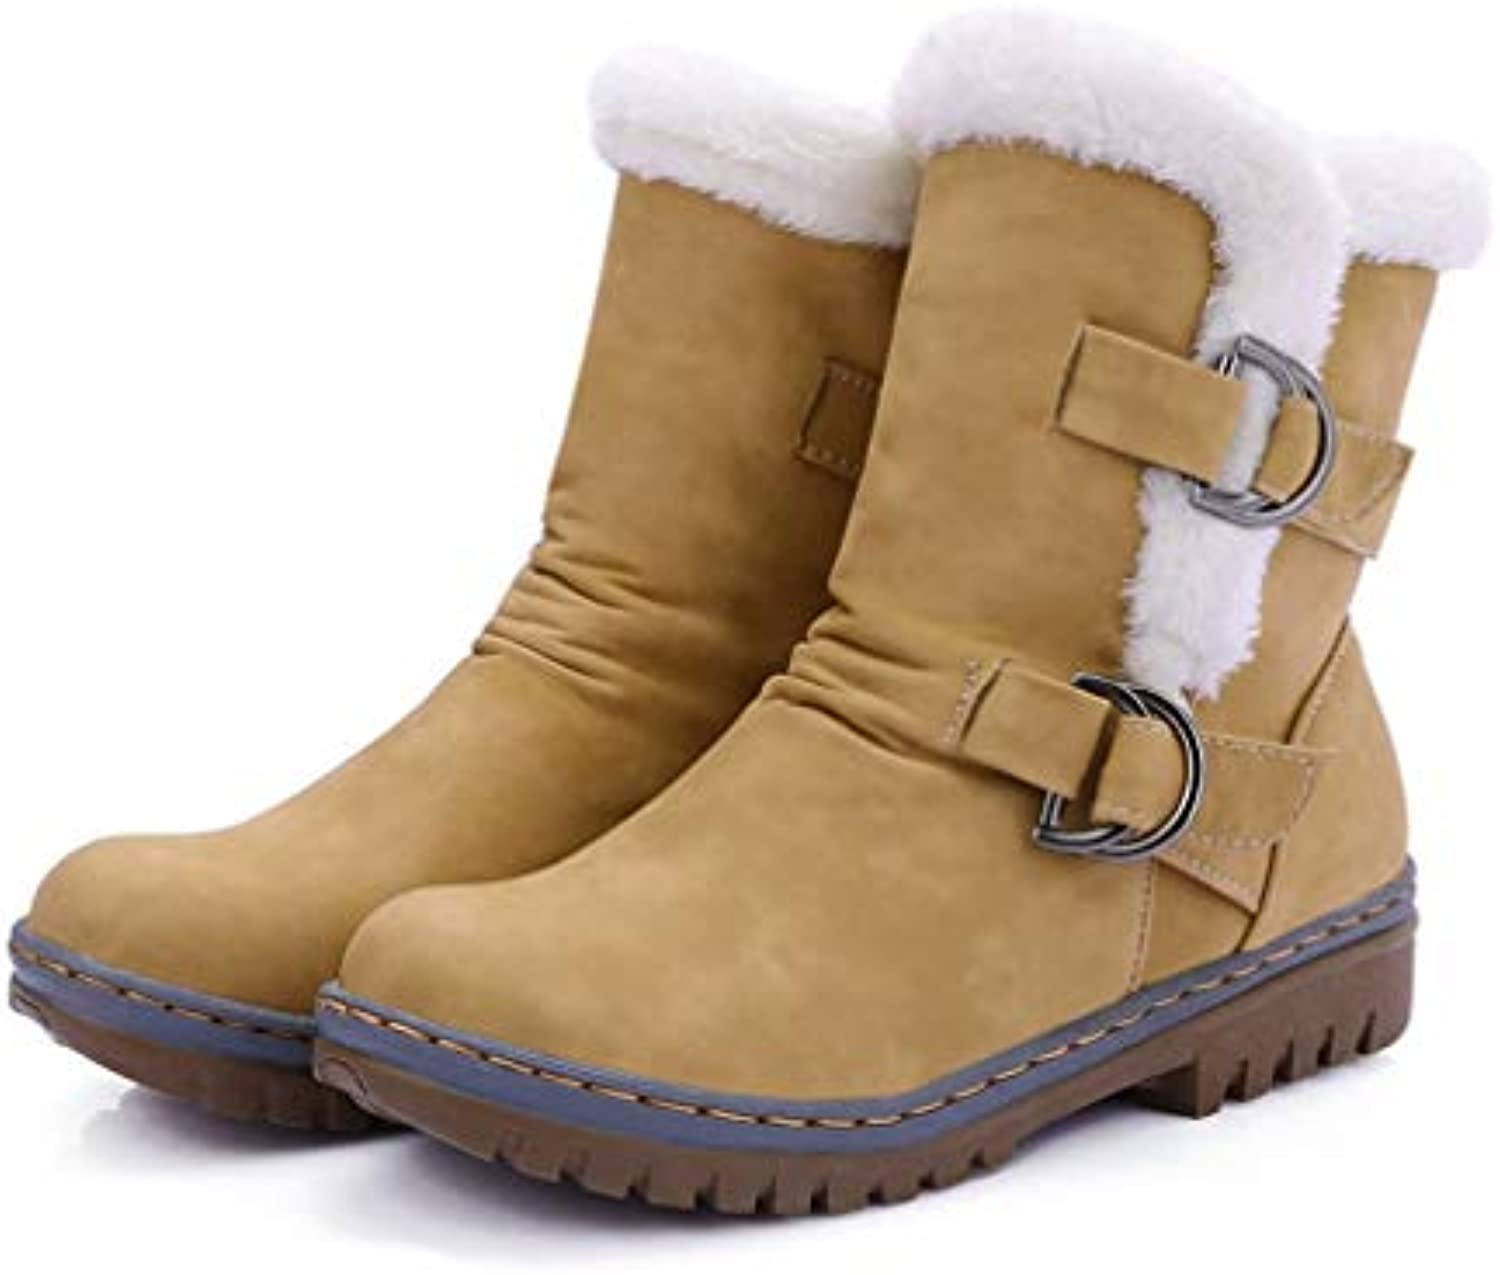 T-JULY Women's Ankle Boots Winter Fur Snow shoes Female Fashion Winter Buckle Warm Non-Slip Boots